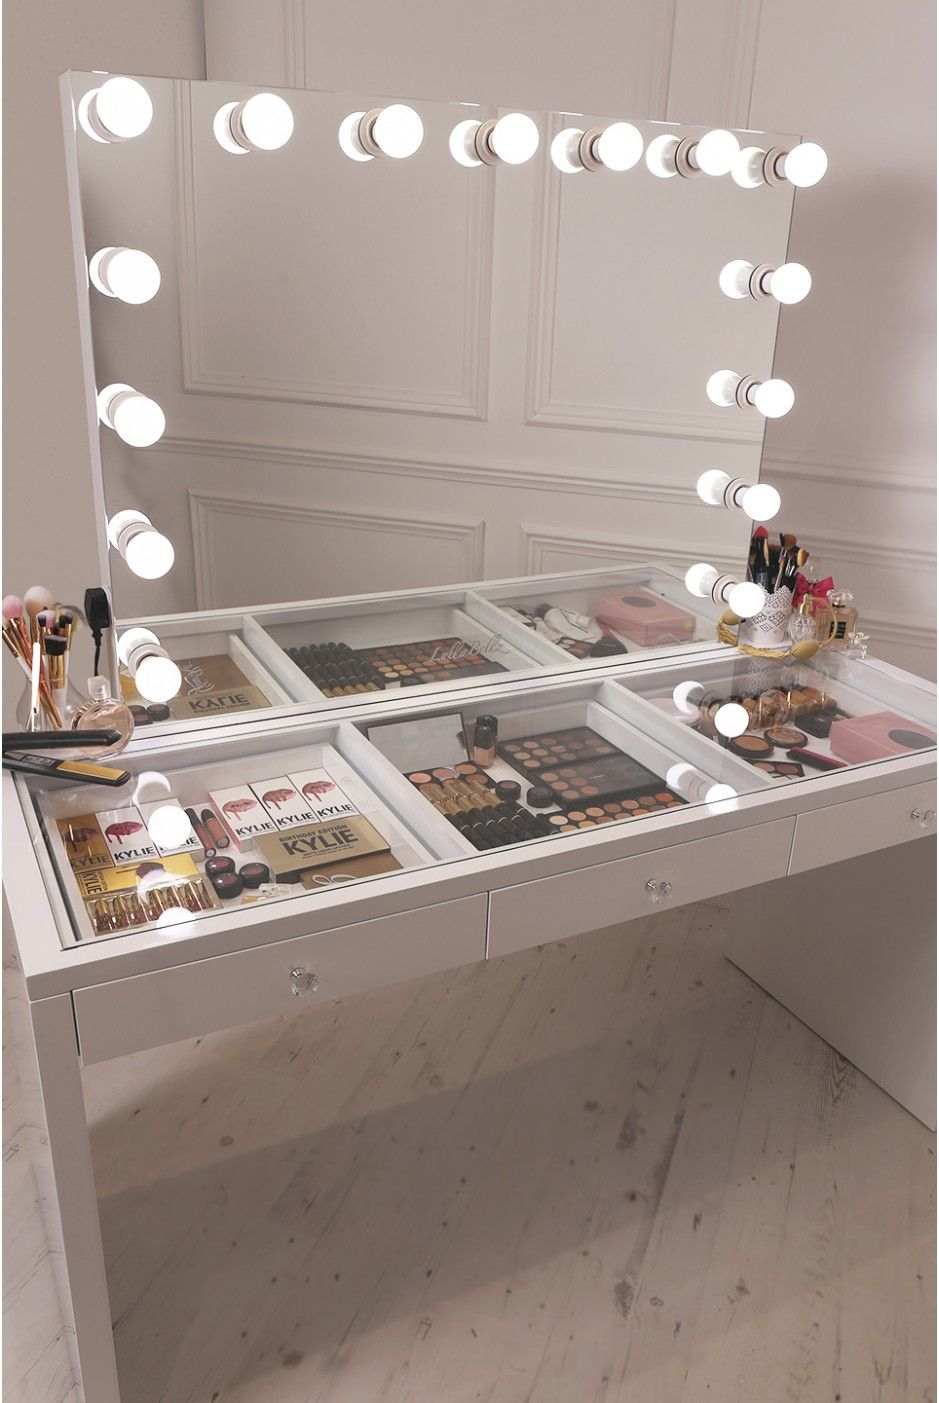 Vanity With Mirror Lights And Drawers : crisp white finish Slaystation make up vanity with premium storage, three spacious drawers ...